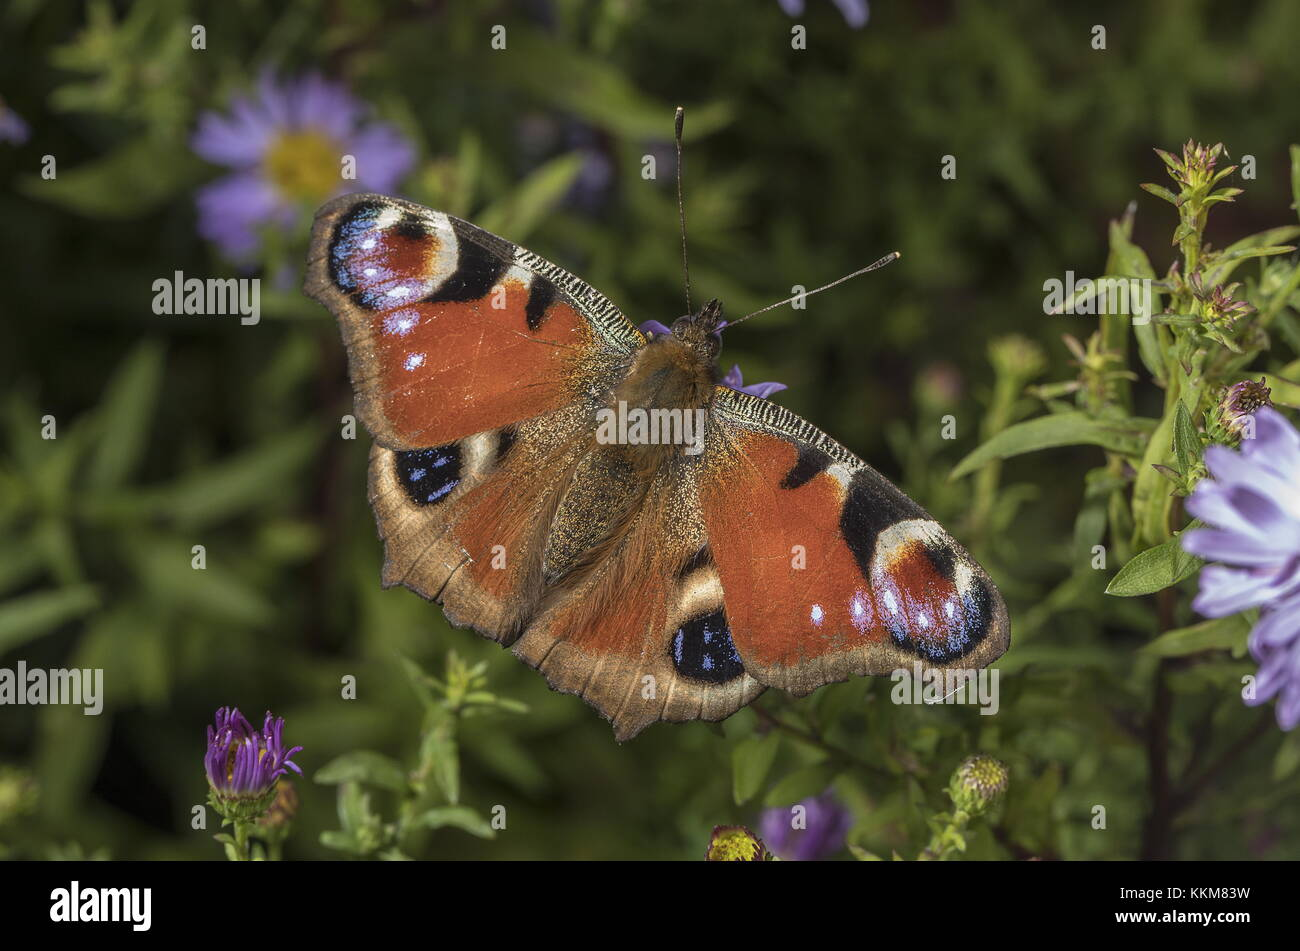 Butterflies And Gardening Stock Photos & Butterflies And Gardening ...